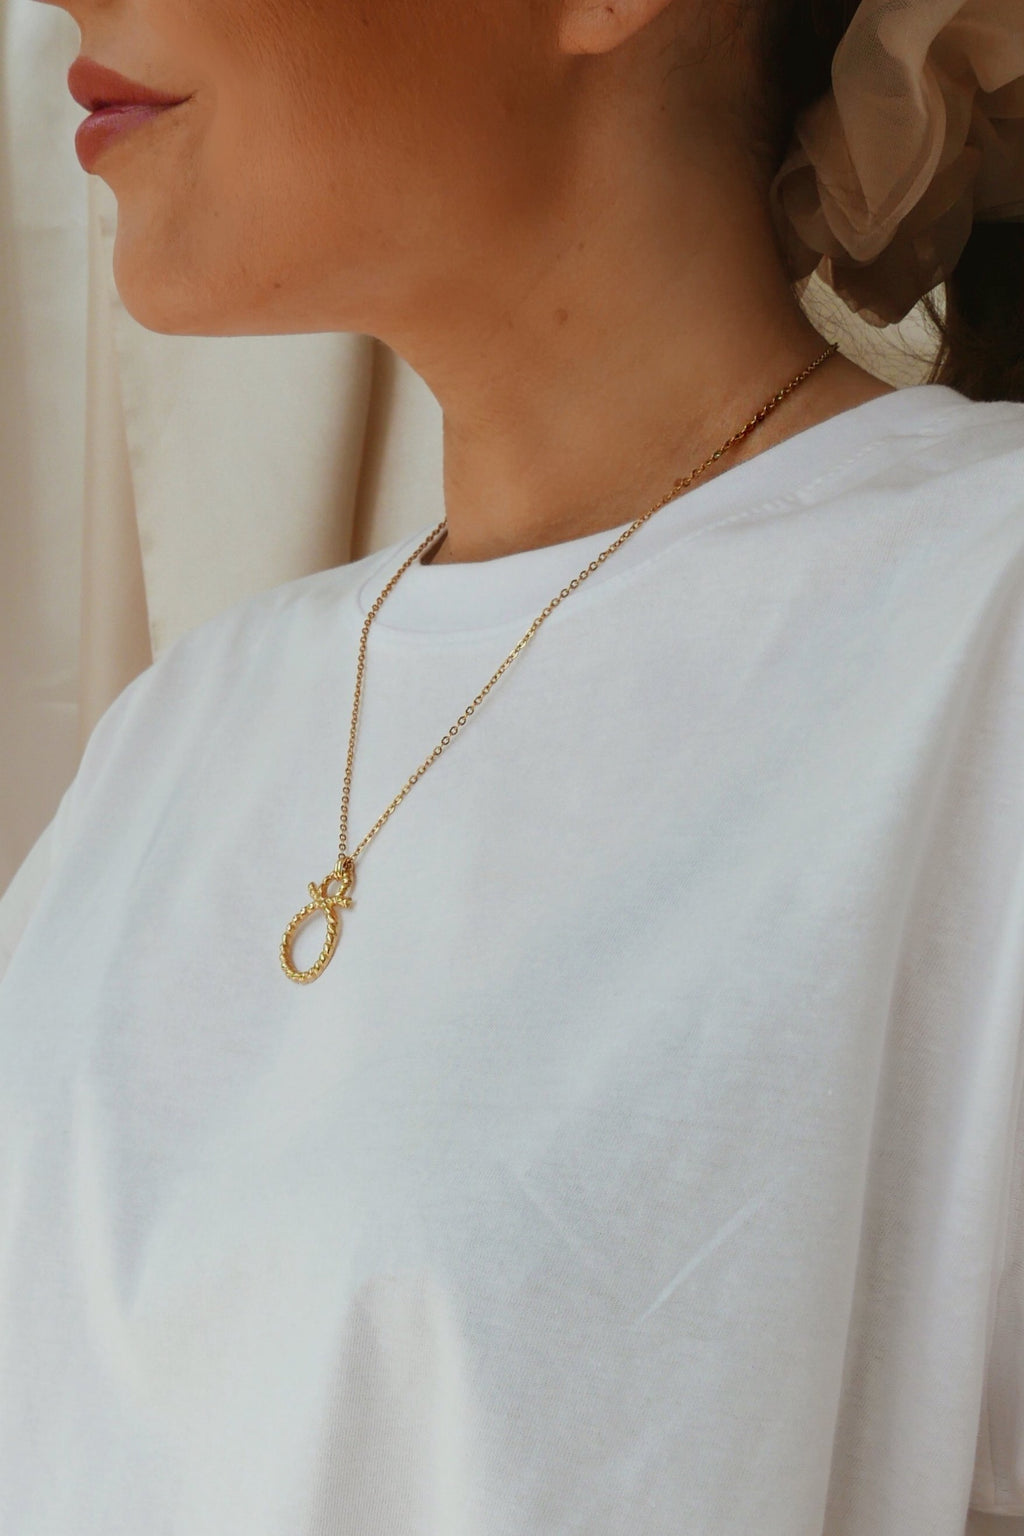 Sorrento Necklace - Boutique Minimaliste